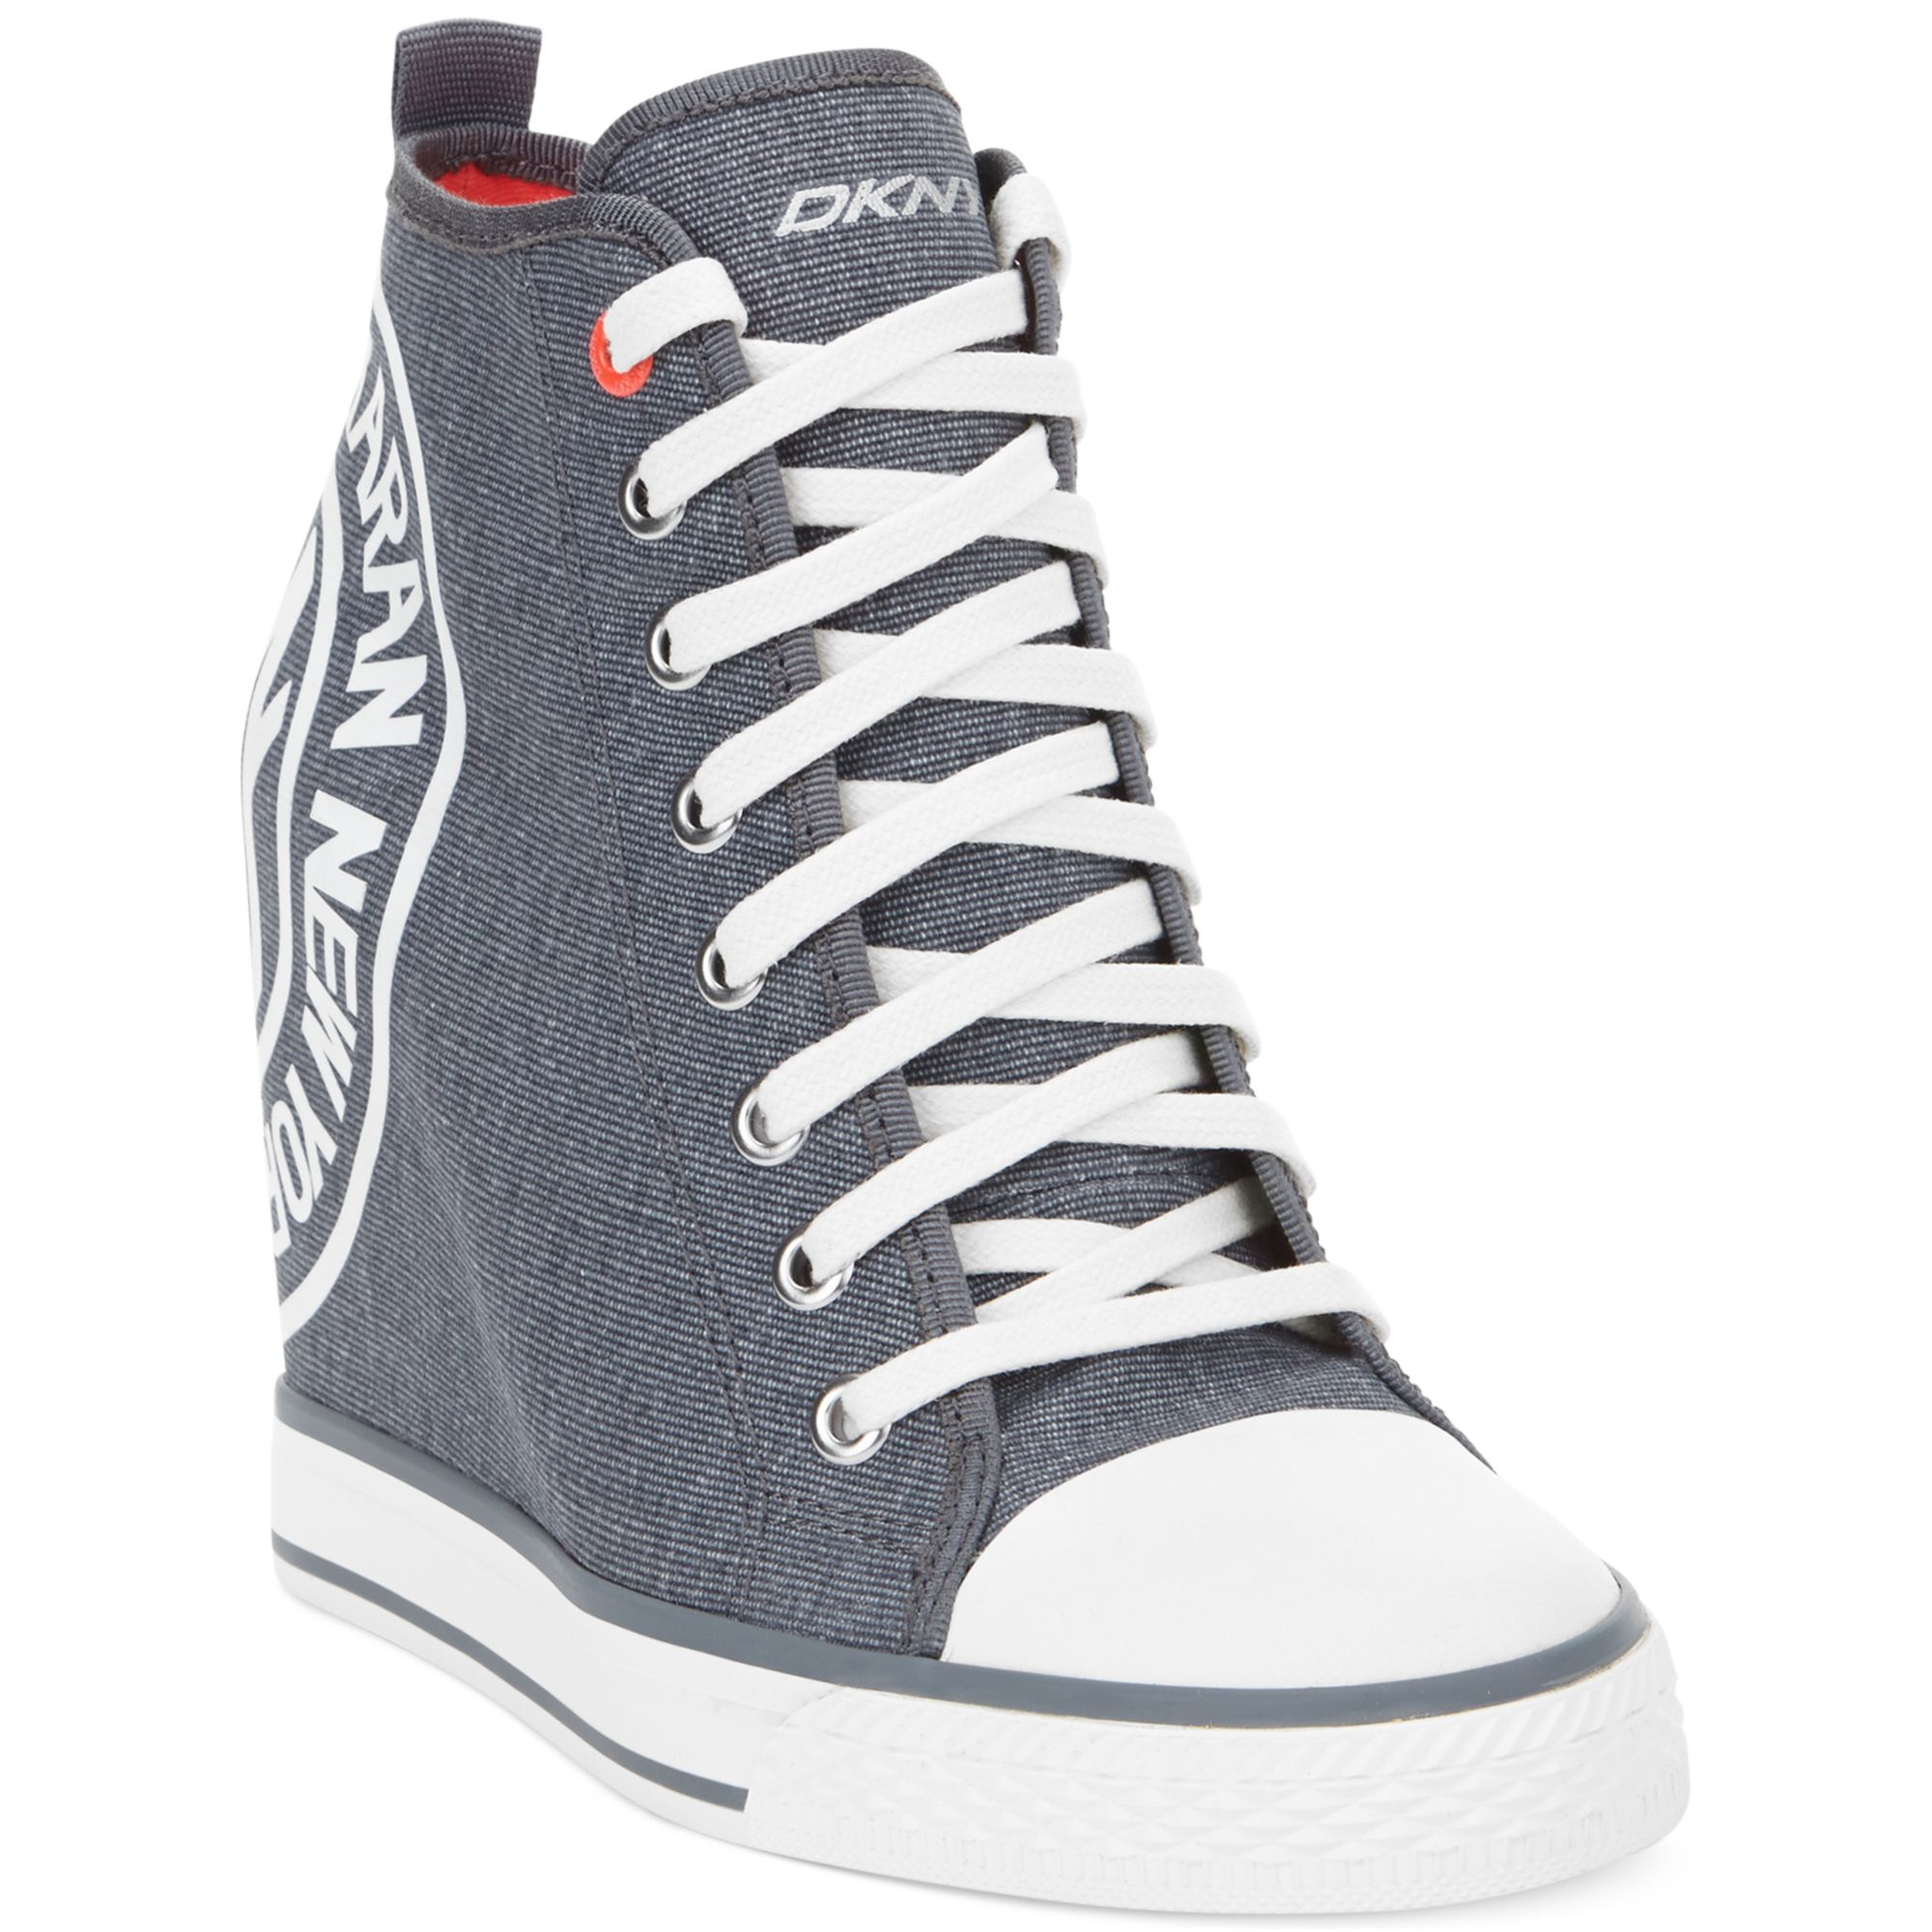 0c82258a9dc Lyst - DKNY Grommet Wedge Sneakers in Gray